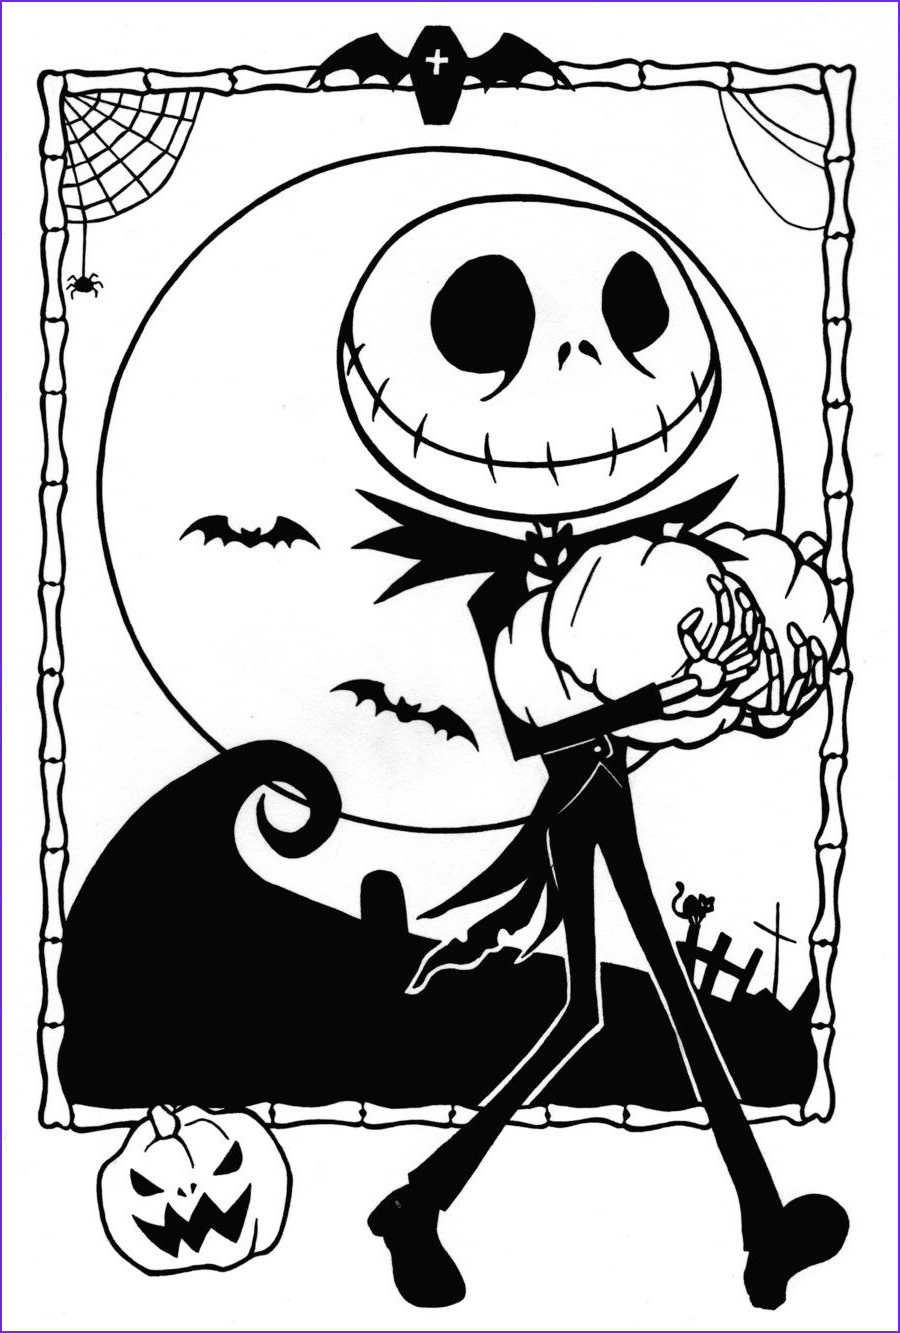 Nightmare before Christmas Coloring Pages Elegant Photos Nightmare before Christmas Jack and Sally Coloring Pages